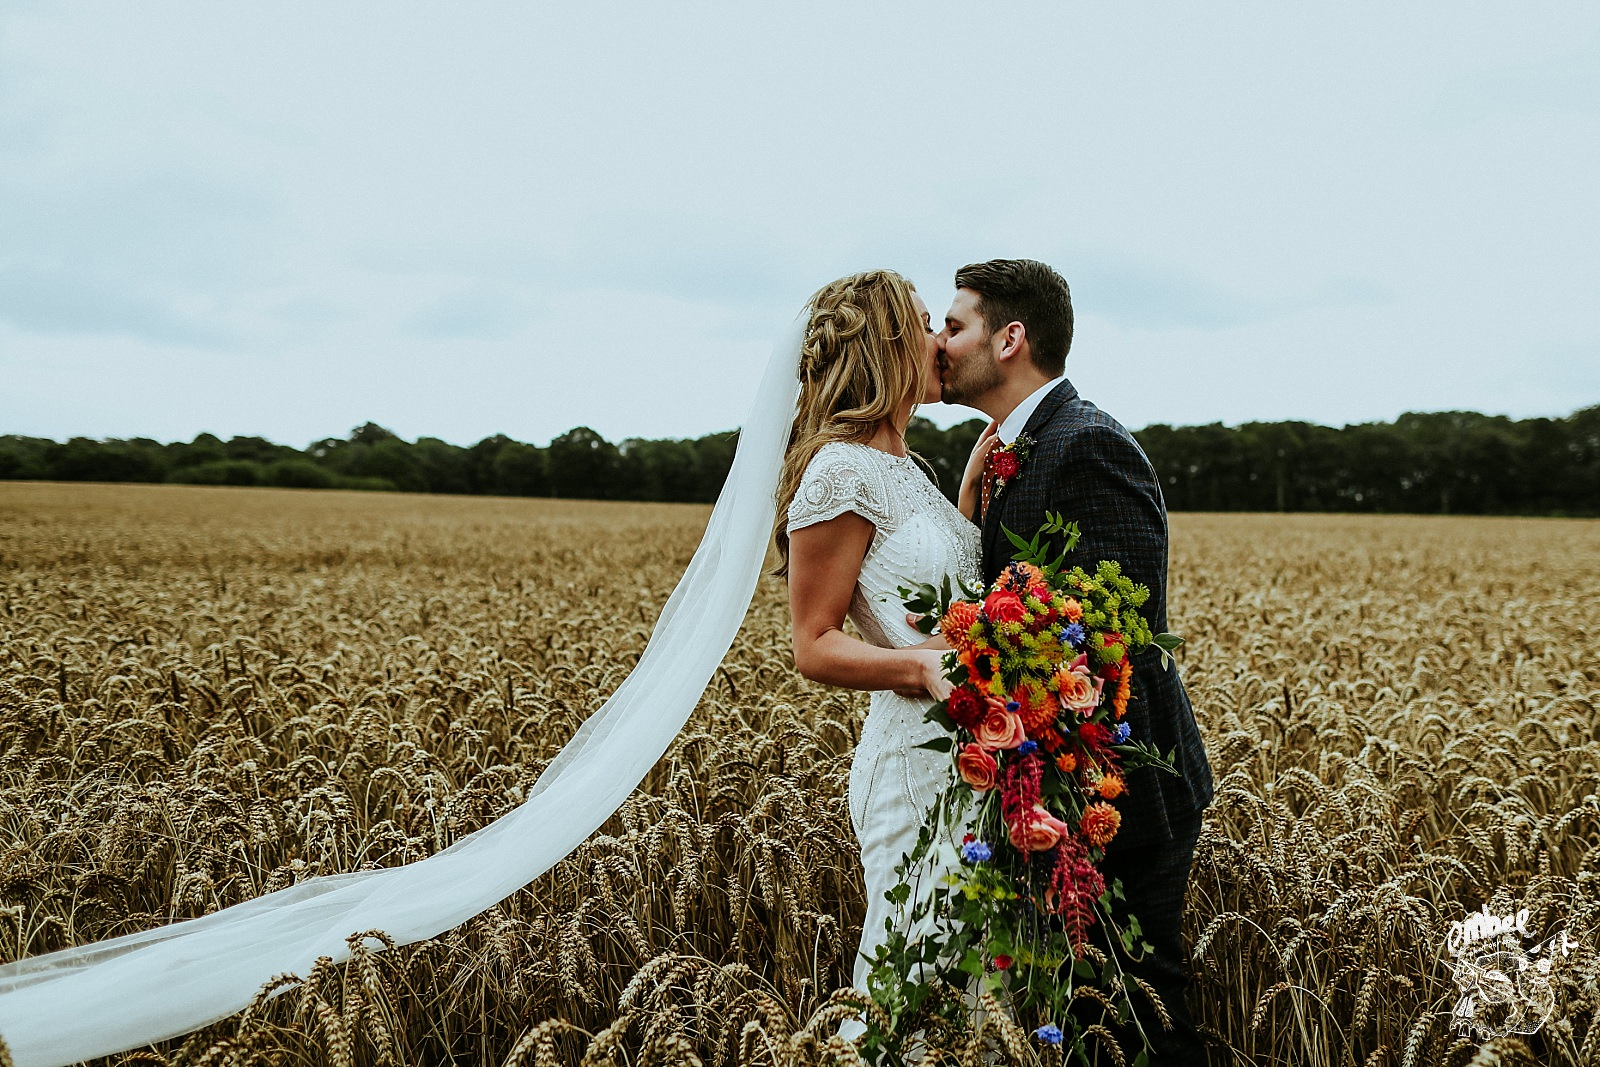 kissing bride and groom in a field of wheat